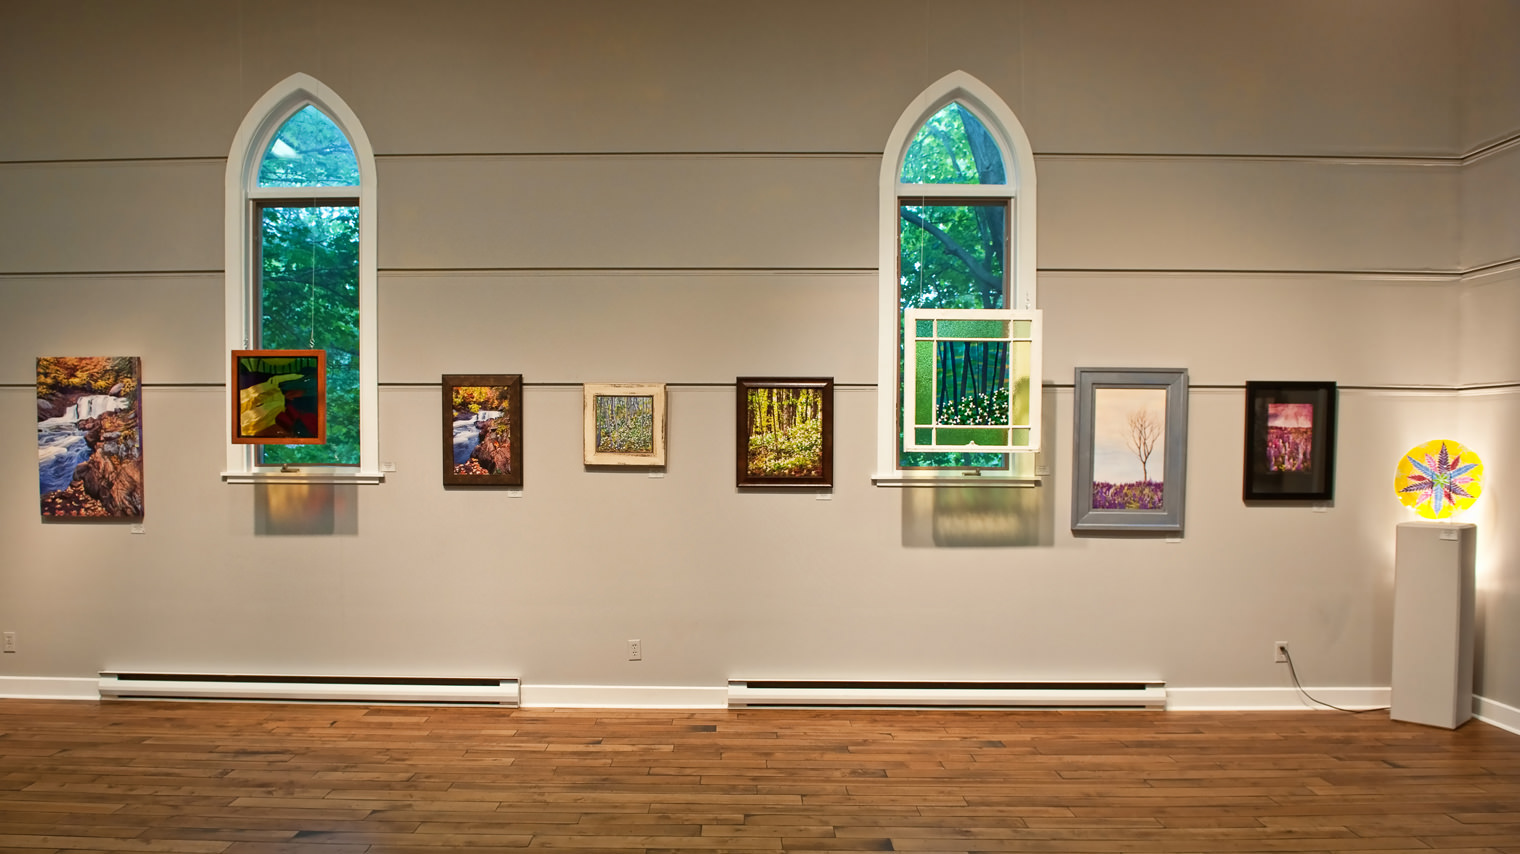 Visit the Chapel Gallery in Bracebridge